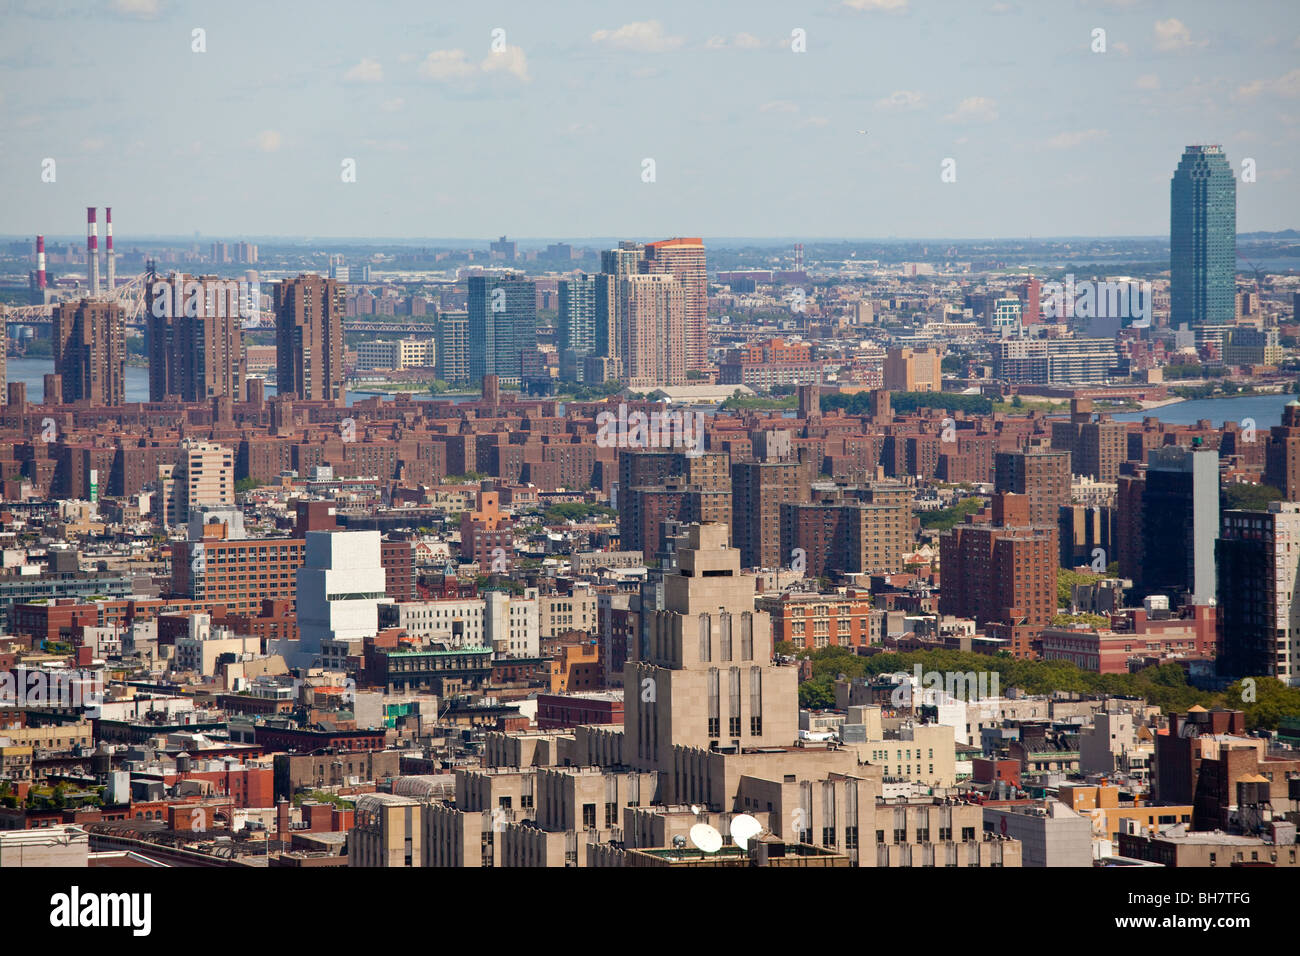 Stuyvesant town projects in manhattan new york city stock for Stuyvesant town nyc